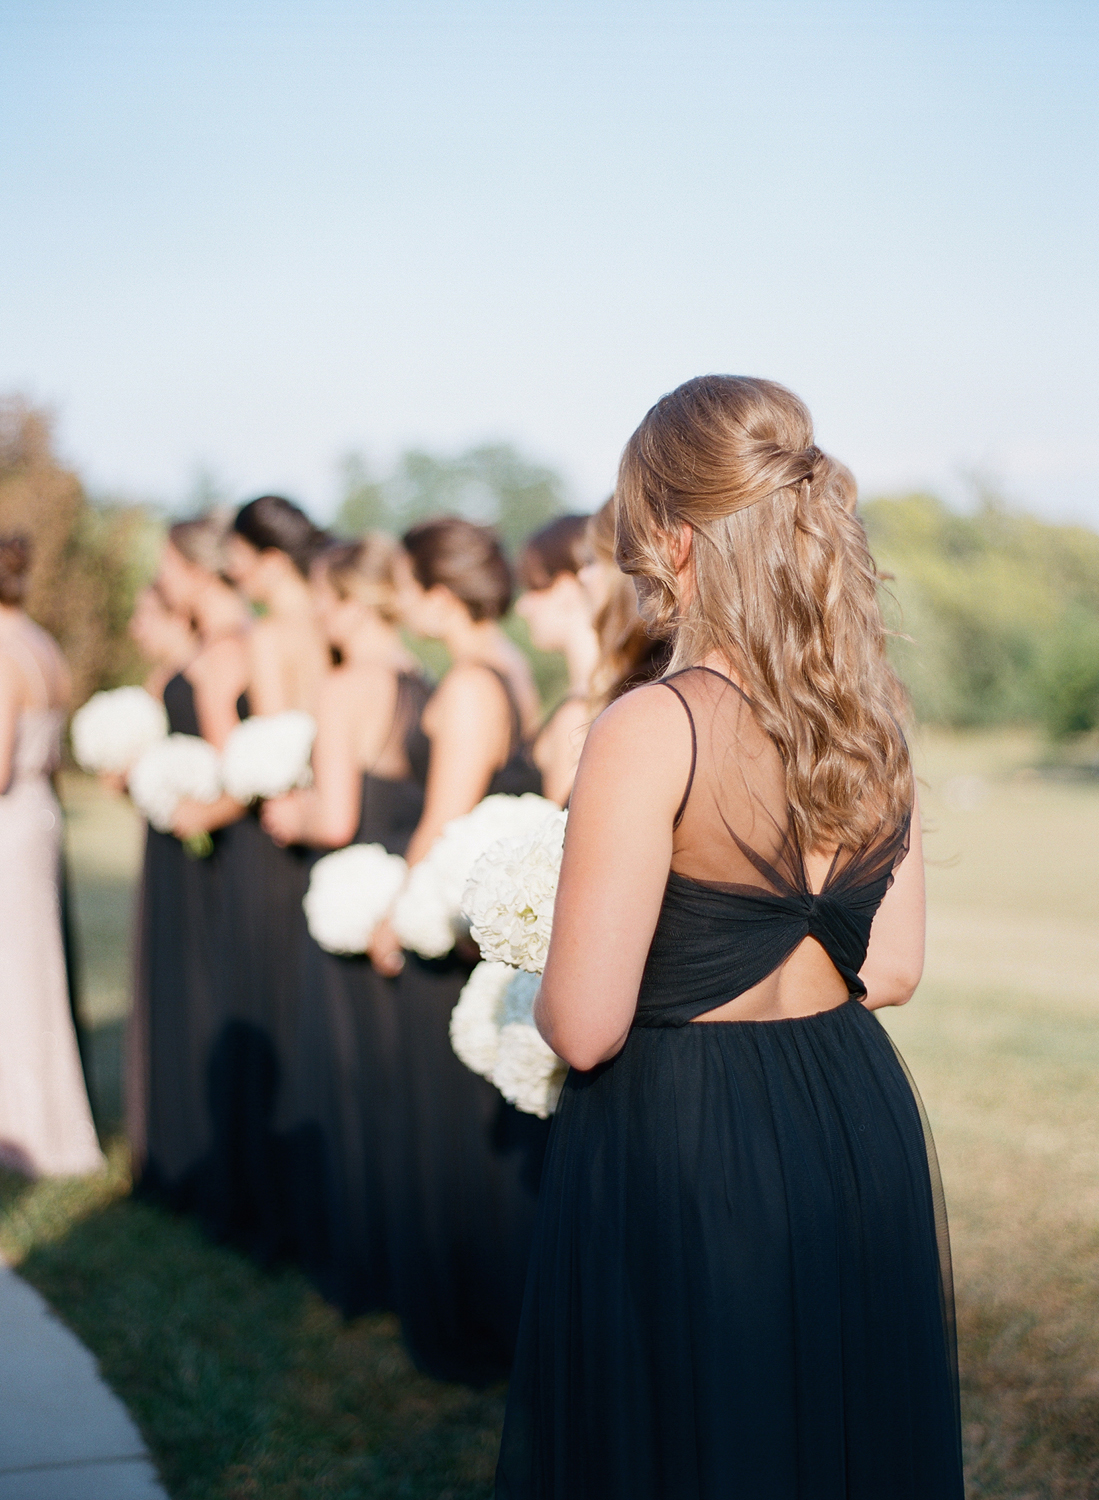 Morven Park Wedding black bridesmaids dresses